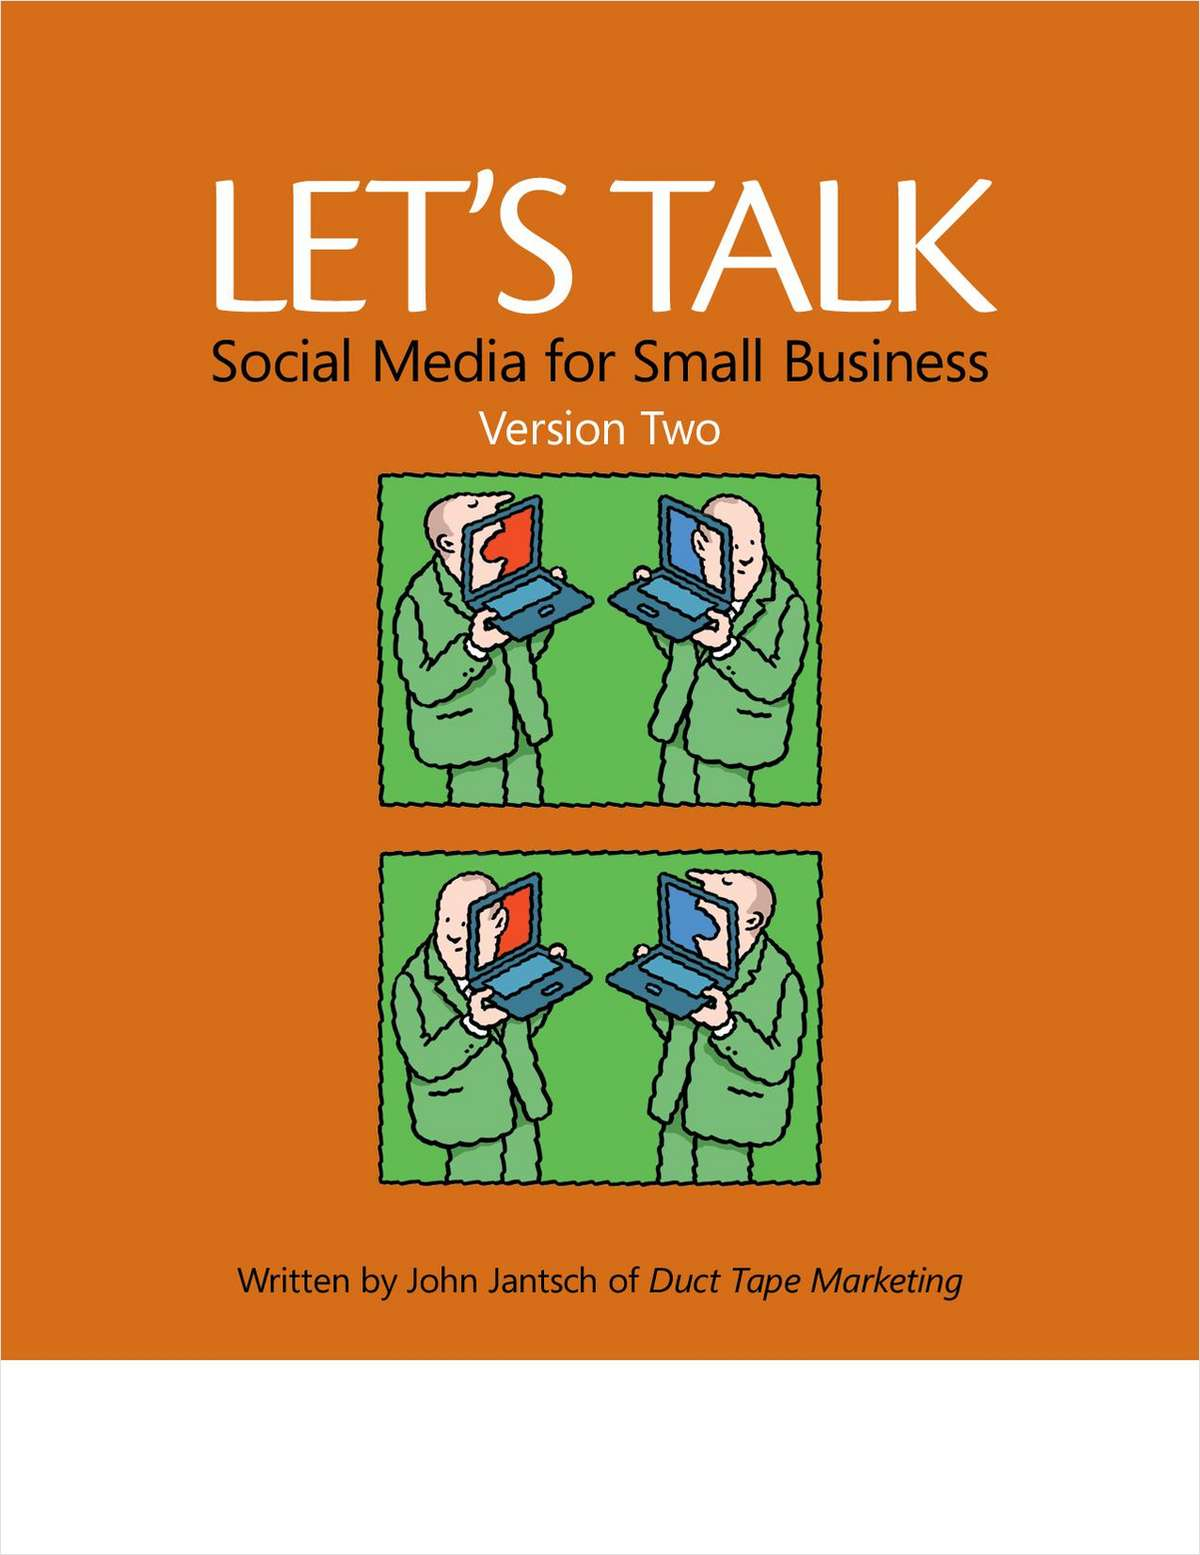 Let's Talk Social Media for Small Business (Version 2) - Free 41 Page eBook